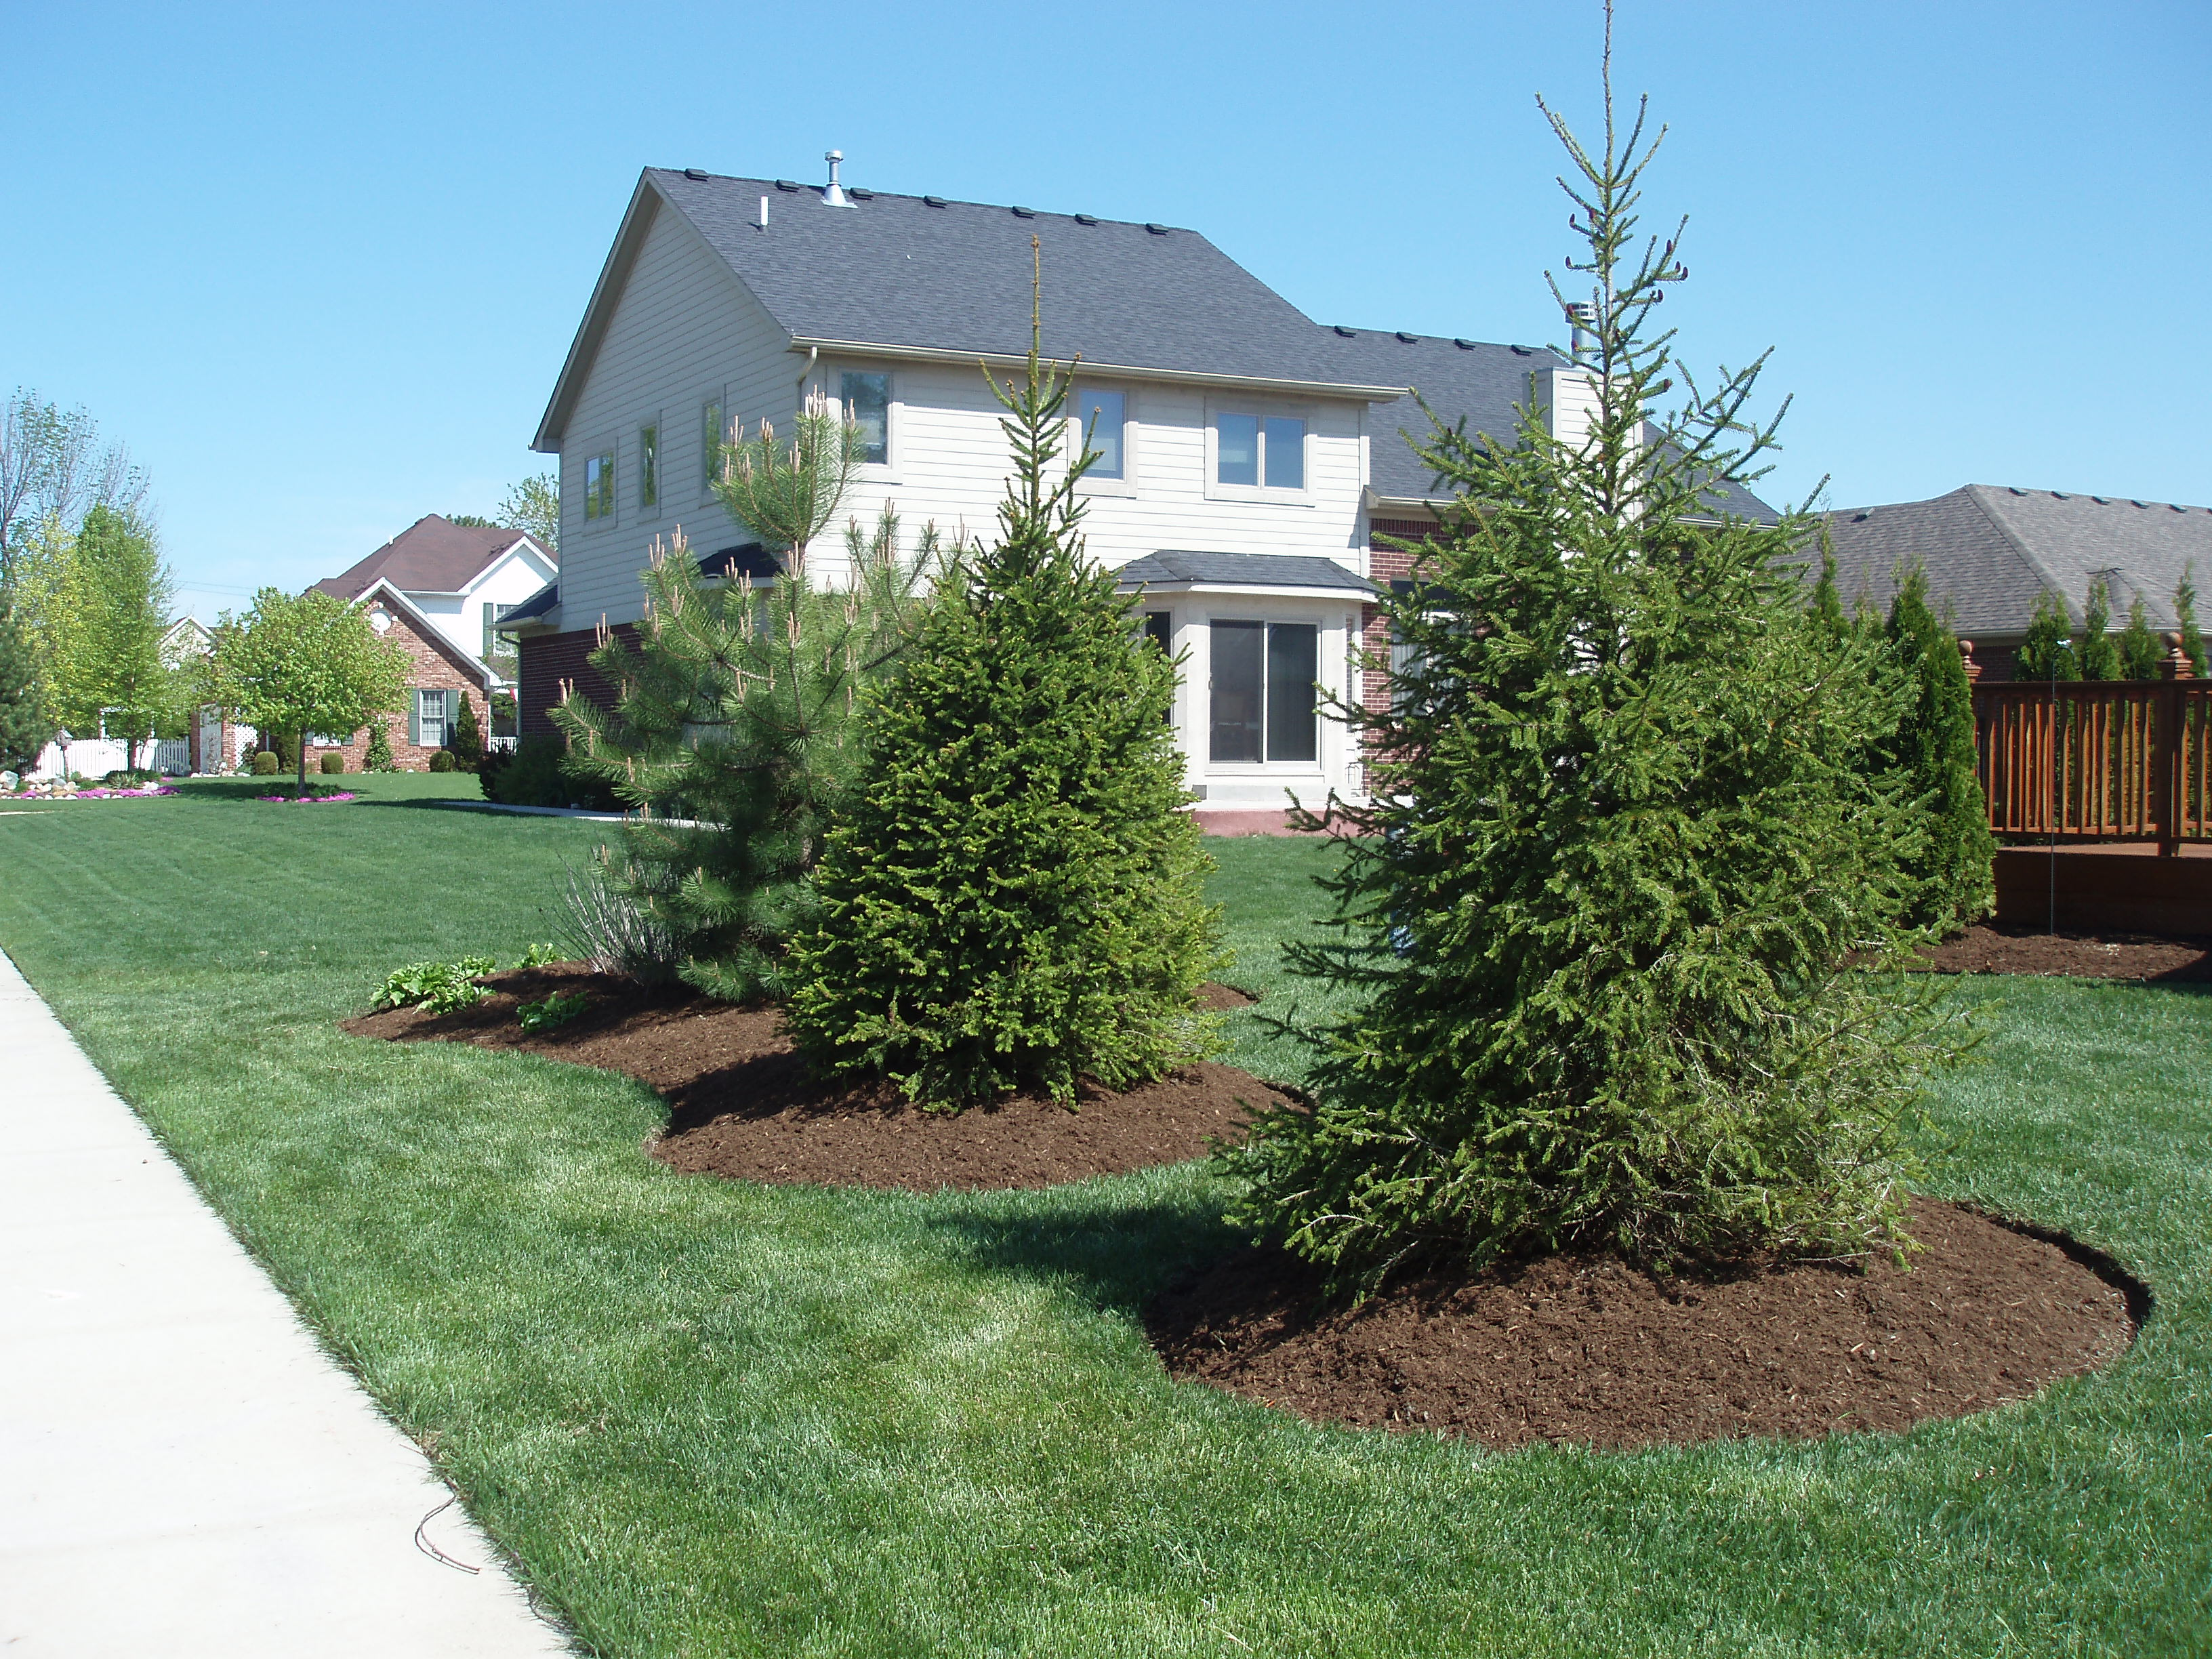 Beverly hills birmingham birmingham mi clawson mi for Tree landscaping ideas